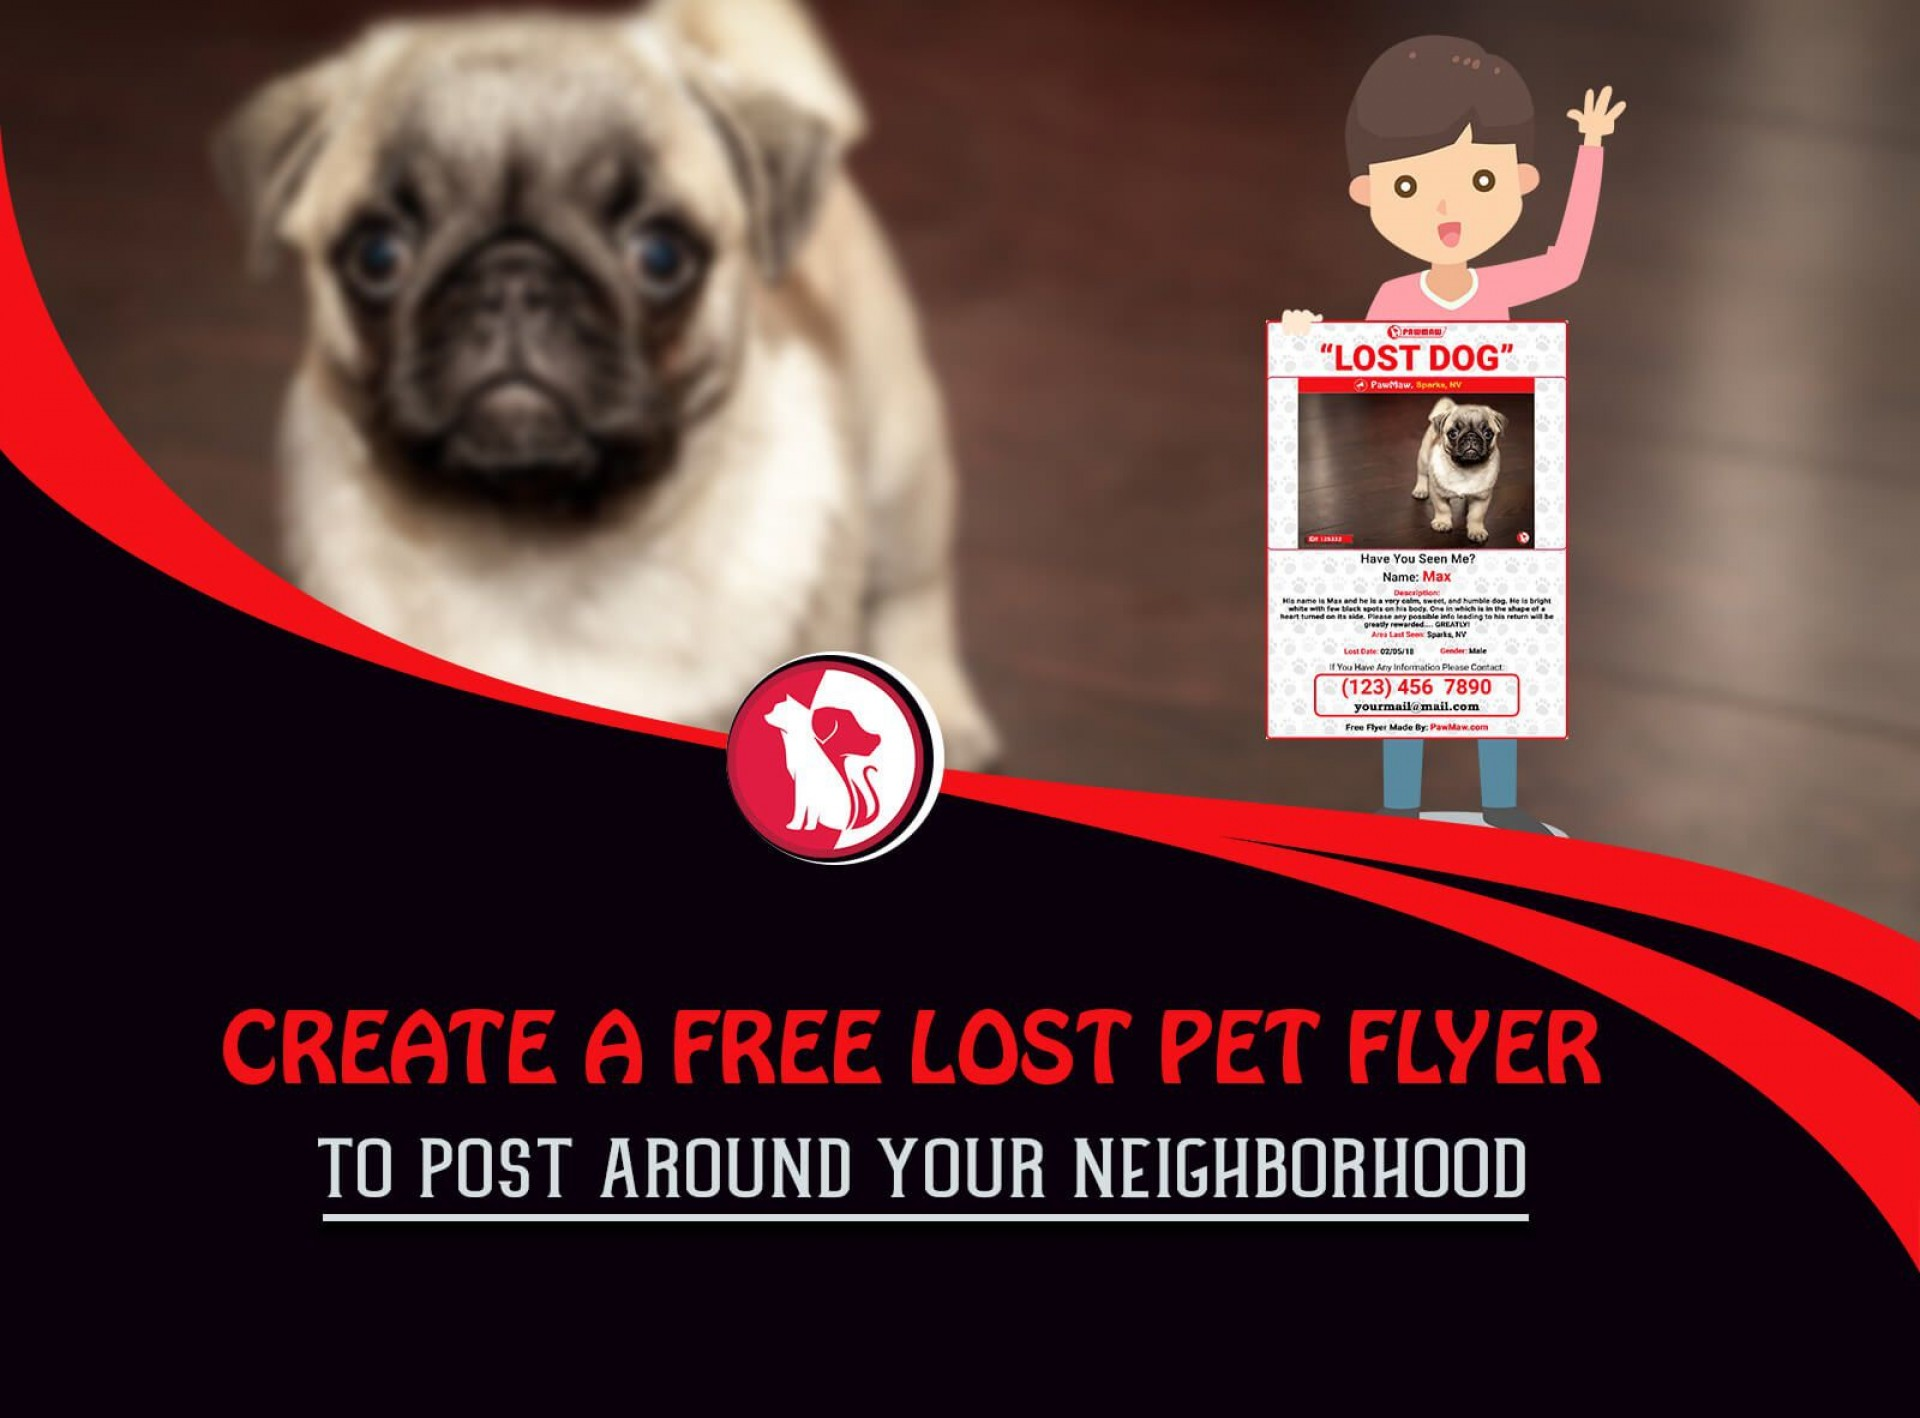 002 Remarkable Lost Dog Flyer Template Concept  Printable Free Missing Pet1920